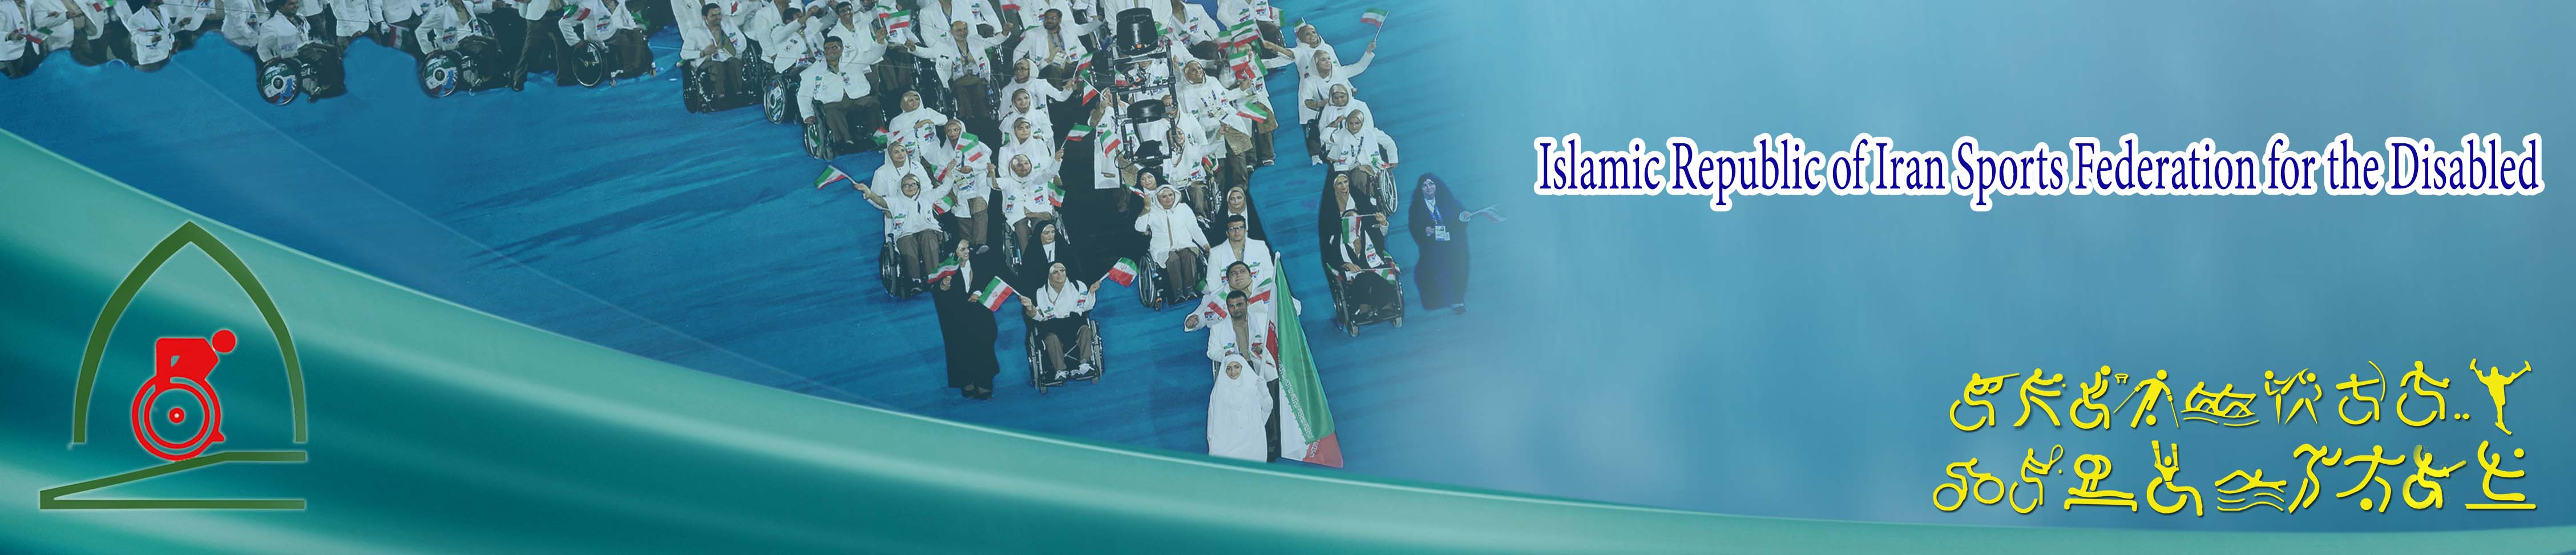 Islamic Republic of Iran Sports Federation for the Disabled